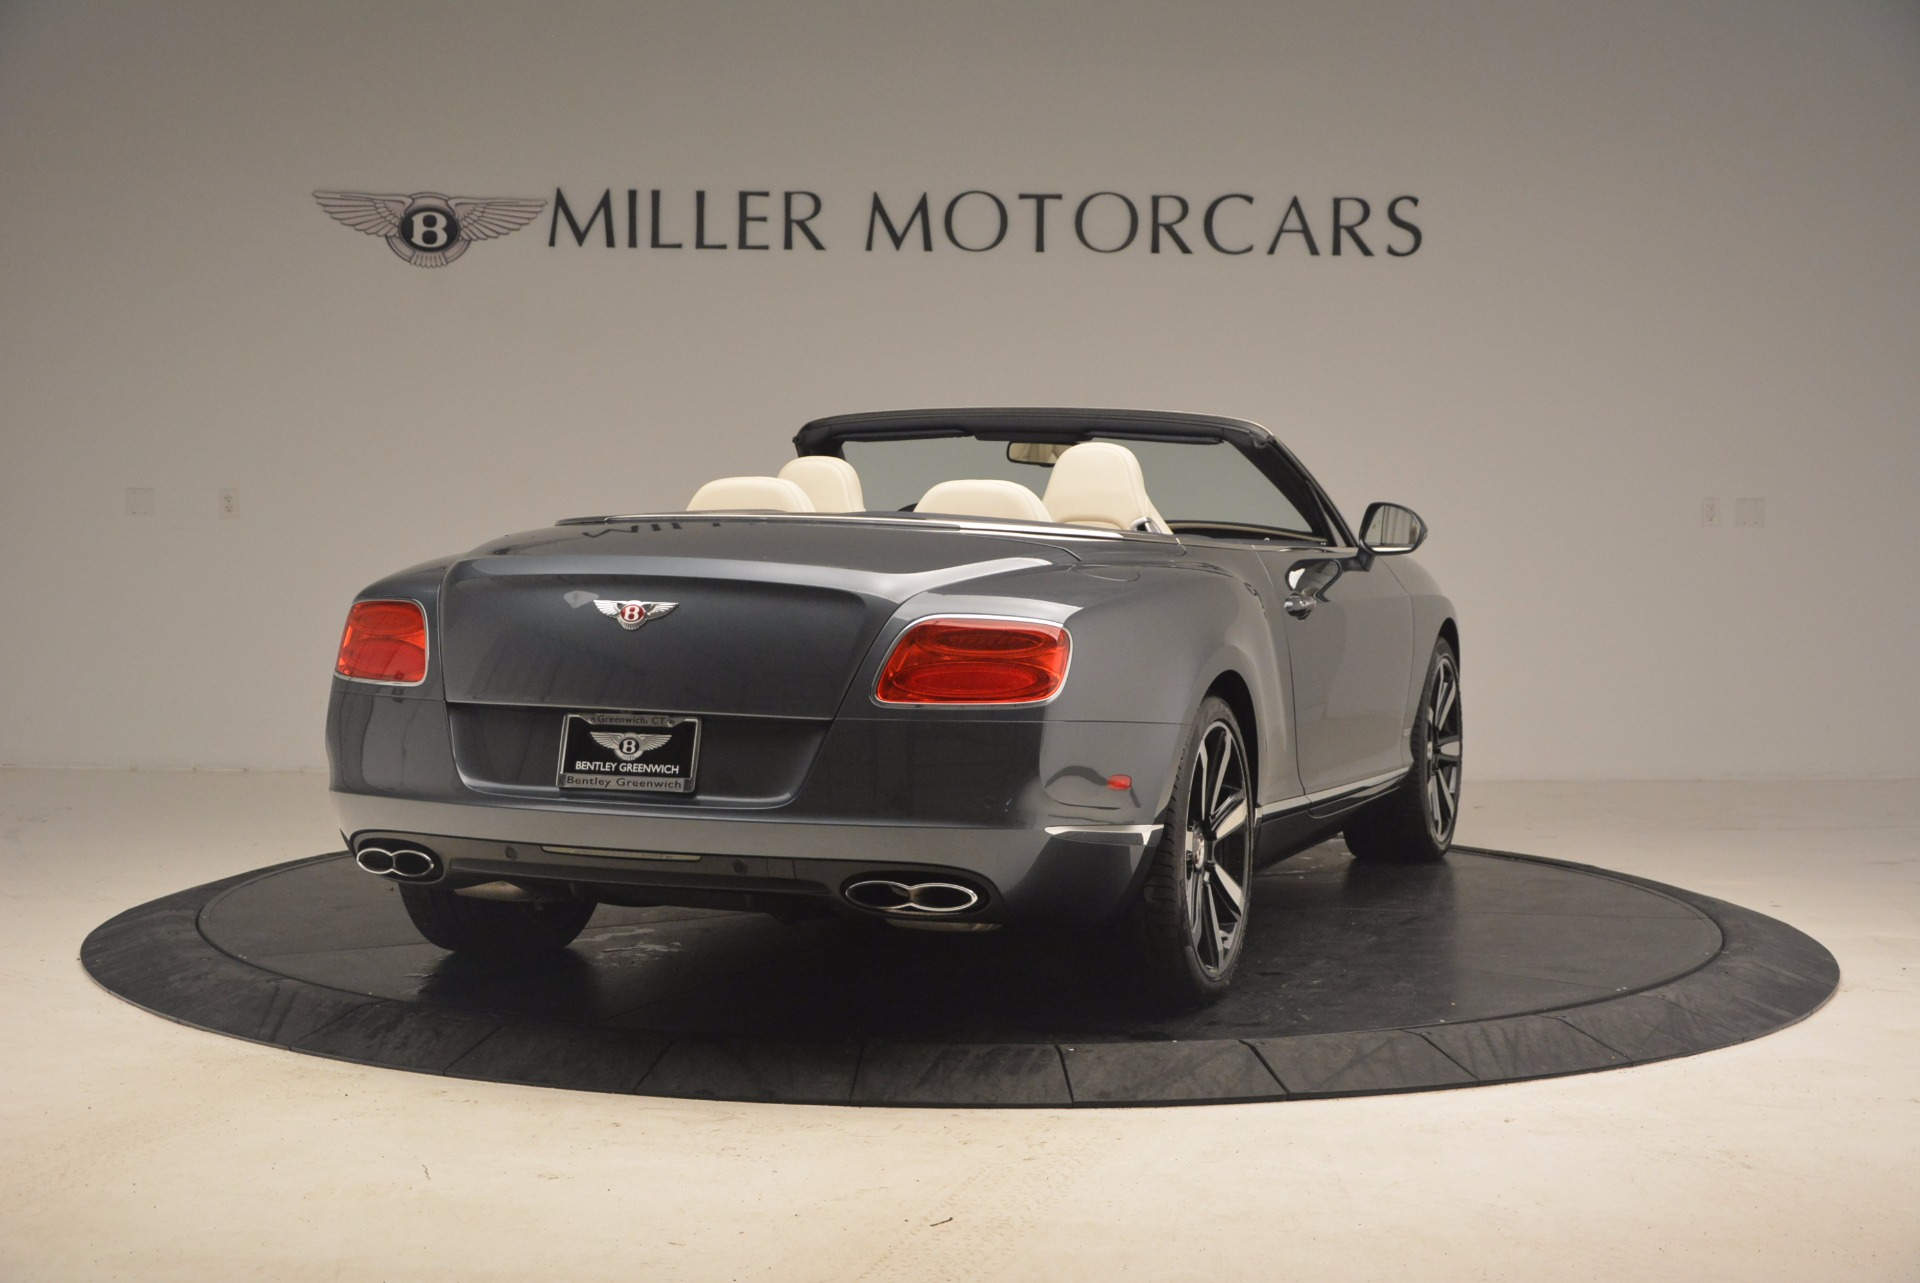 Used 2013 Bentley Continental GT V8 Le Mans Edition, 1 of 48 For Sale In Greenwich, CT. Alfa Romeo of Greenwich, 7226 1288_p7